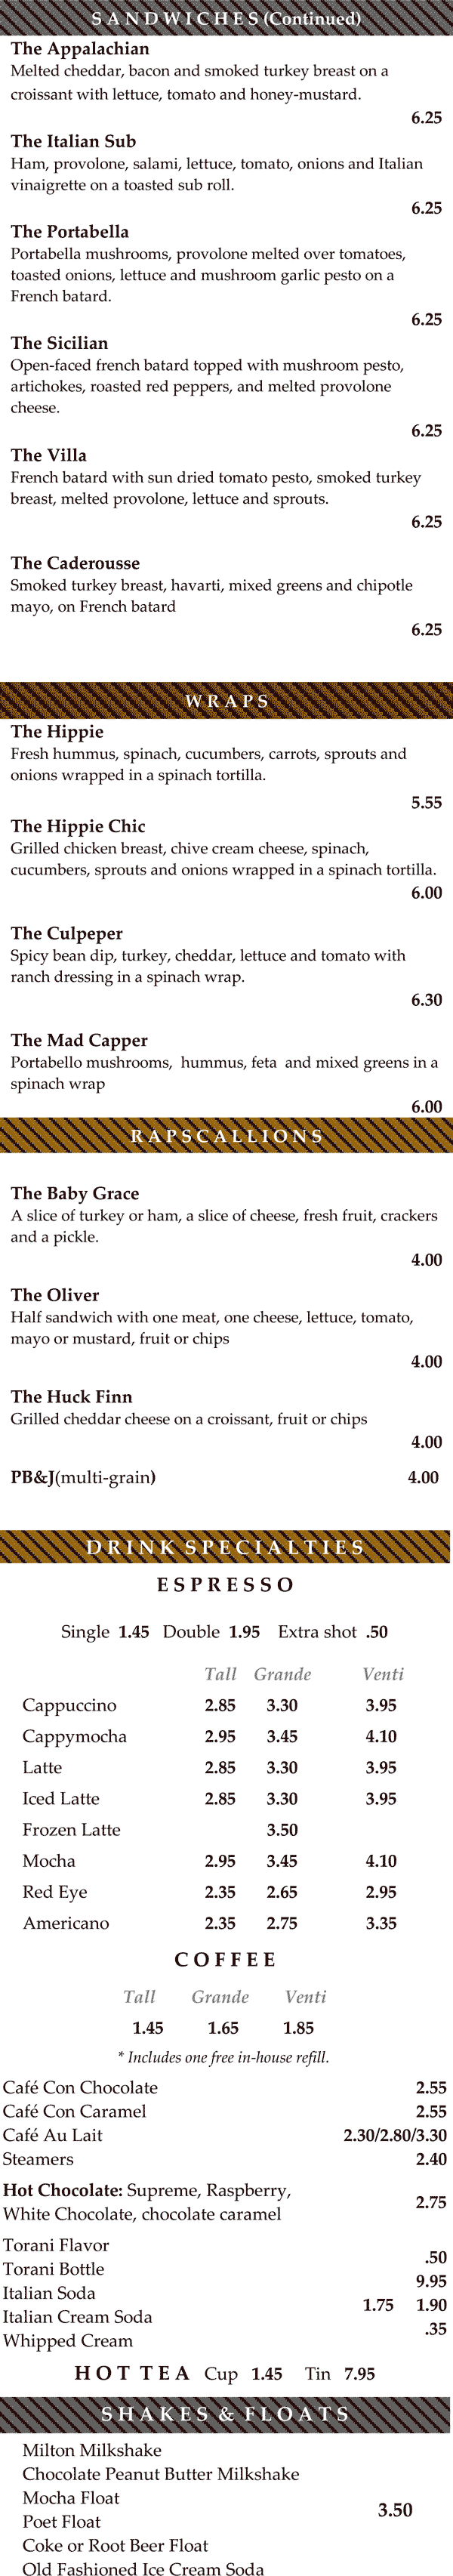 The Drowsy Poet Cafe menu - page 2